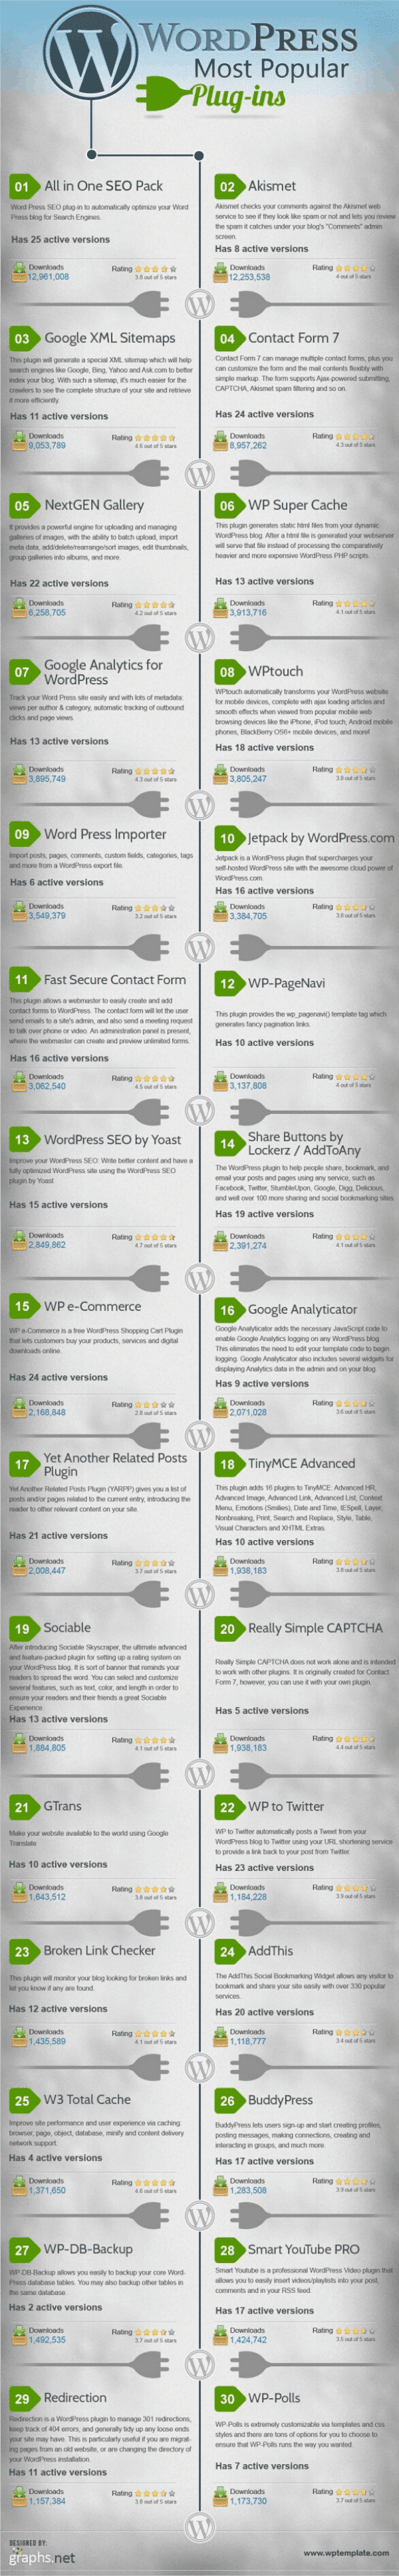 Check out these other popular WordPress plugins, in this great infographic!